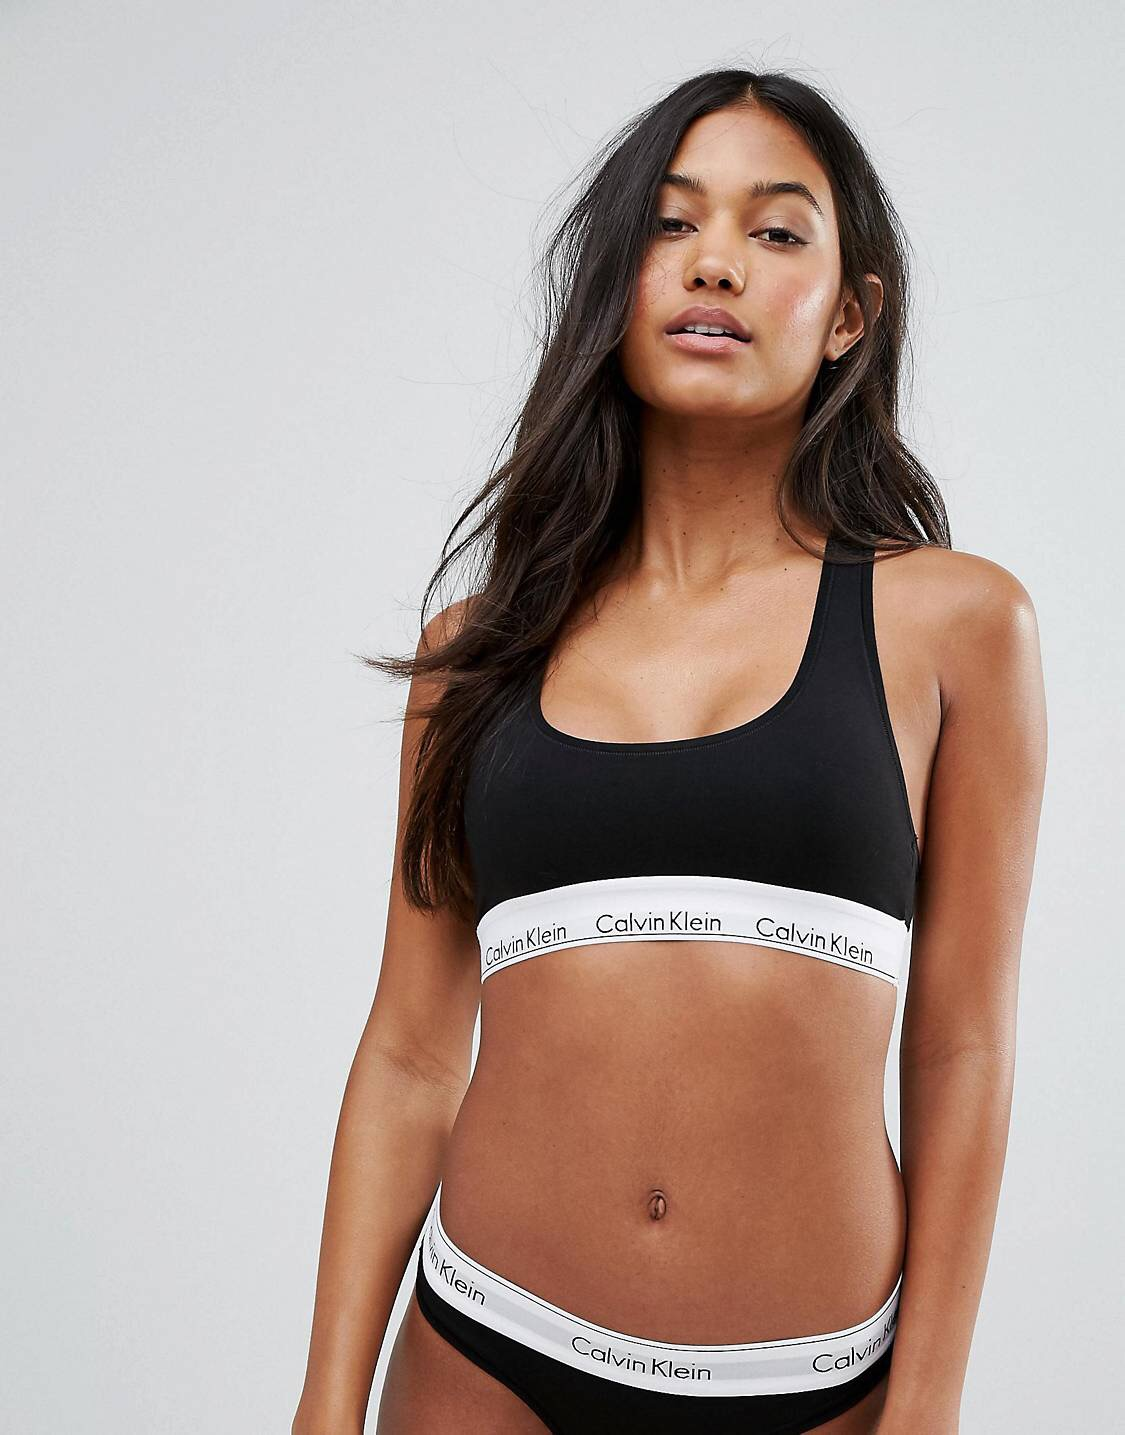 Thot must have number 2, bralette. - Get you a cute black number to start with, something plain. This CK one is perfect entry level, but for the more experienced can also go for lace, or frills. There's a nice range.